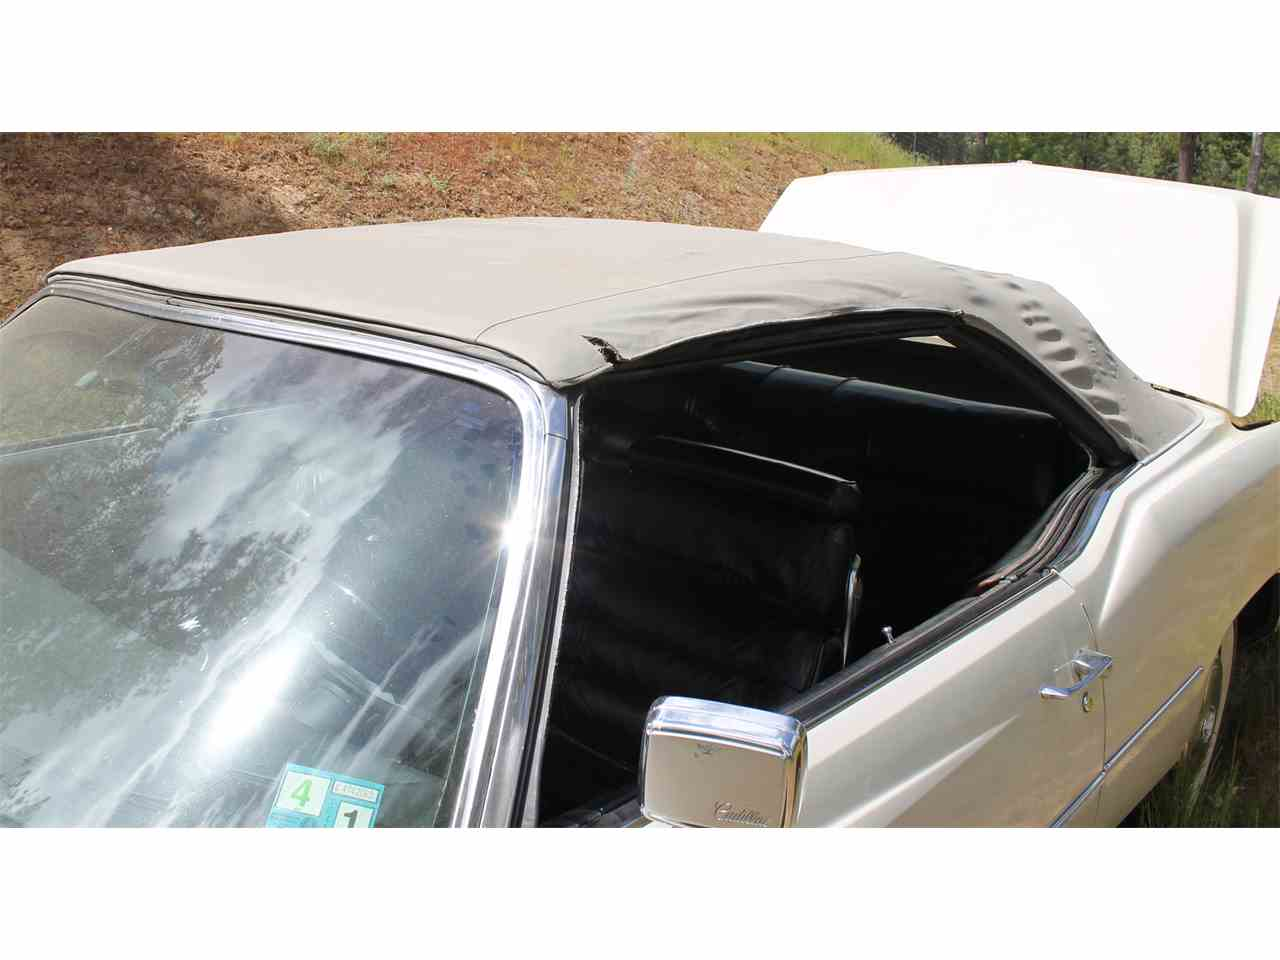 Large Picture of '75 Cadillac Eldorado located in Sutter Creek California - $10,000.00 - I5ZP